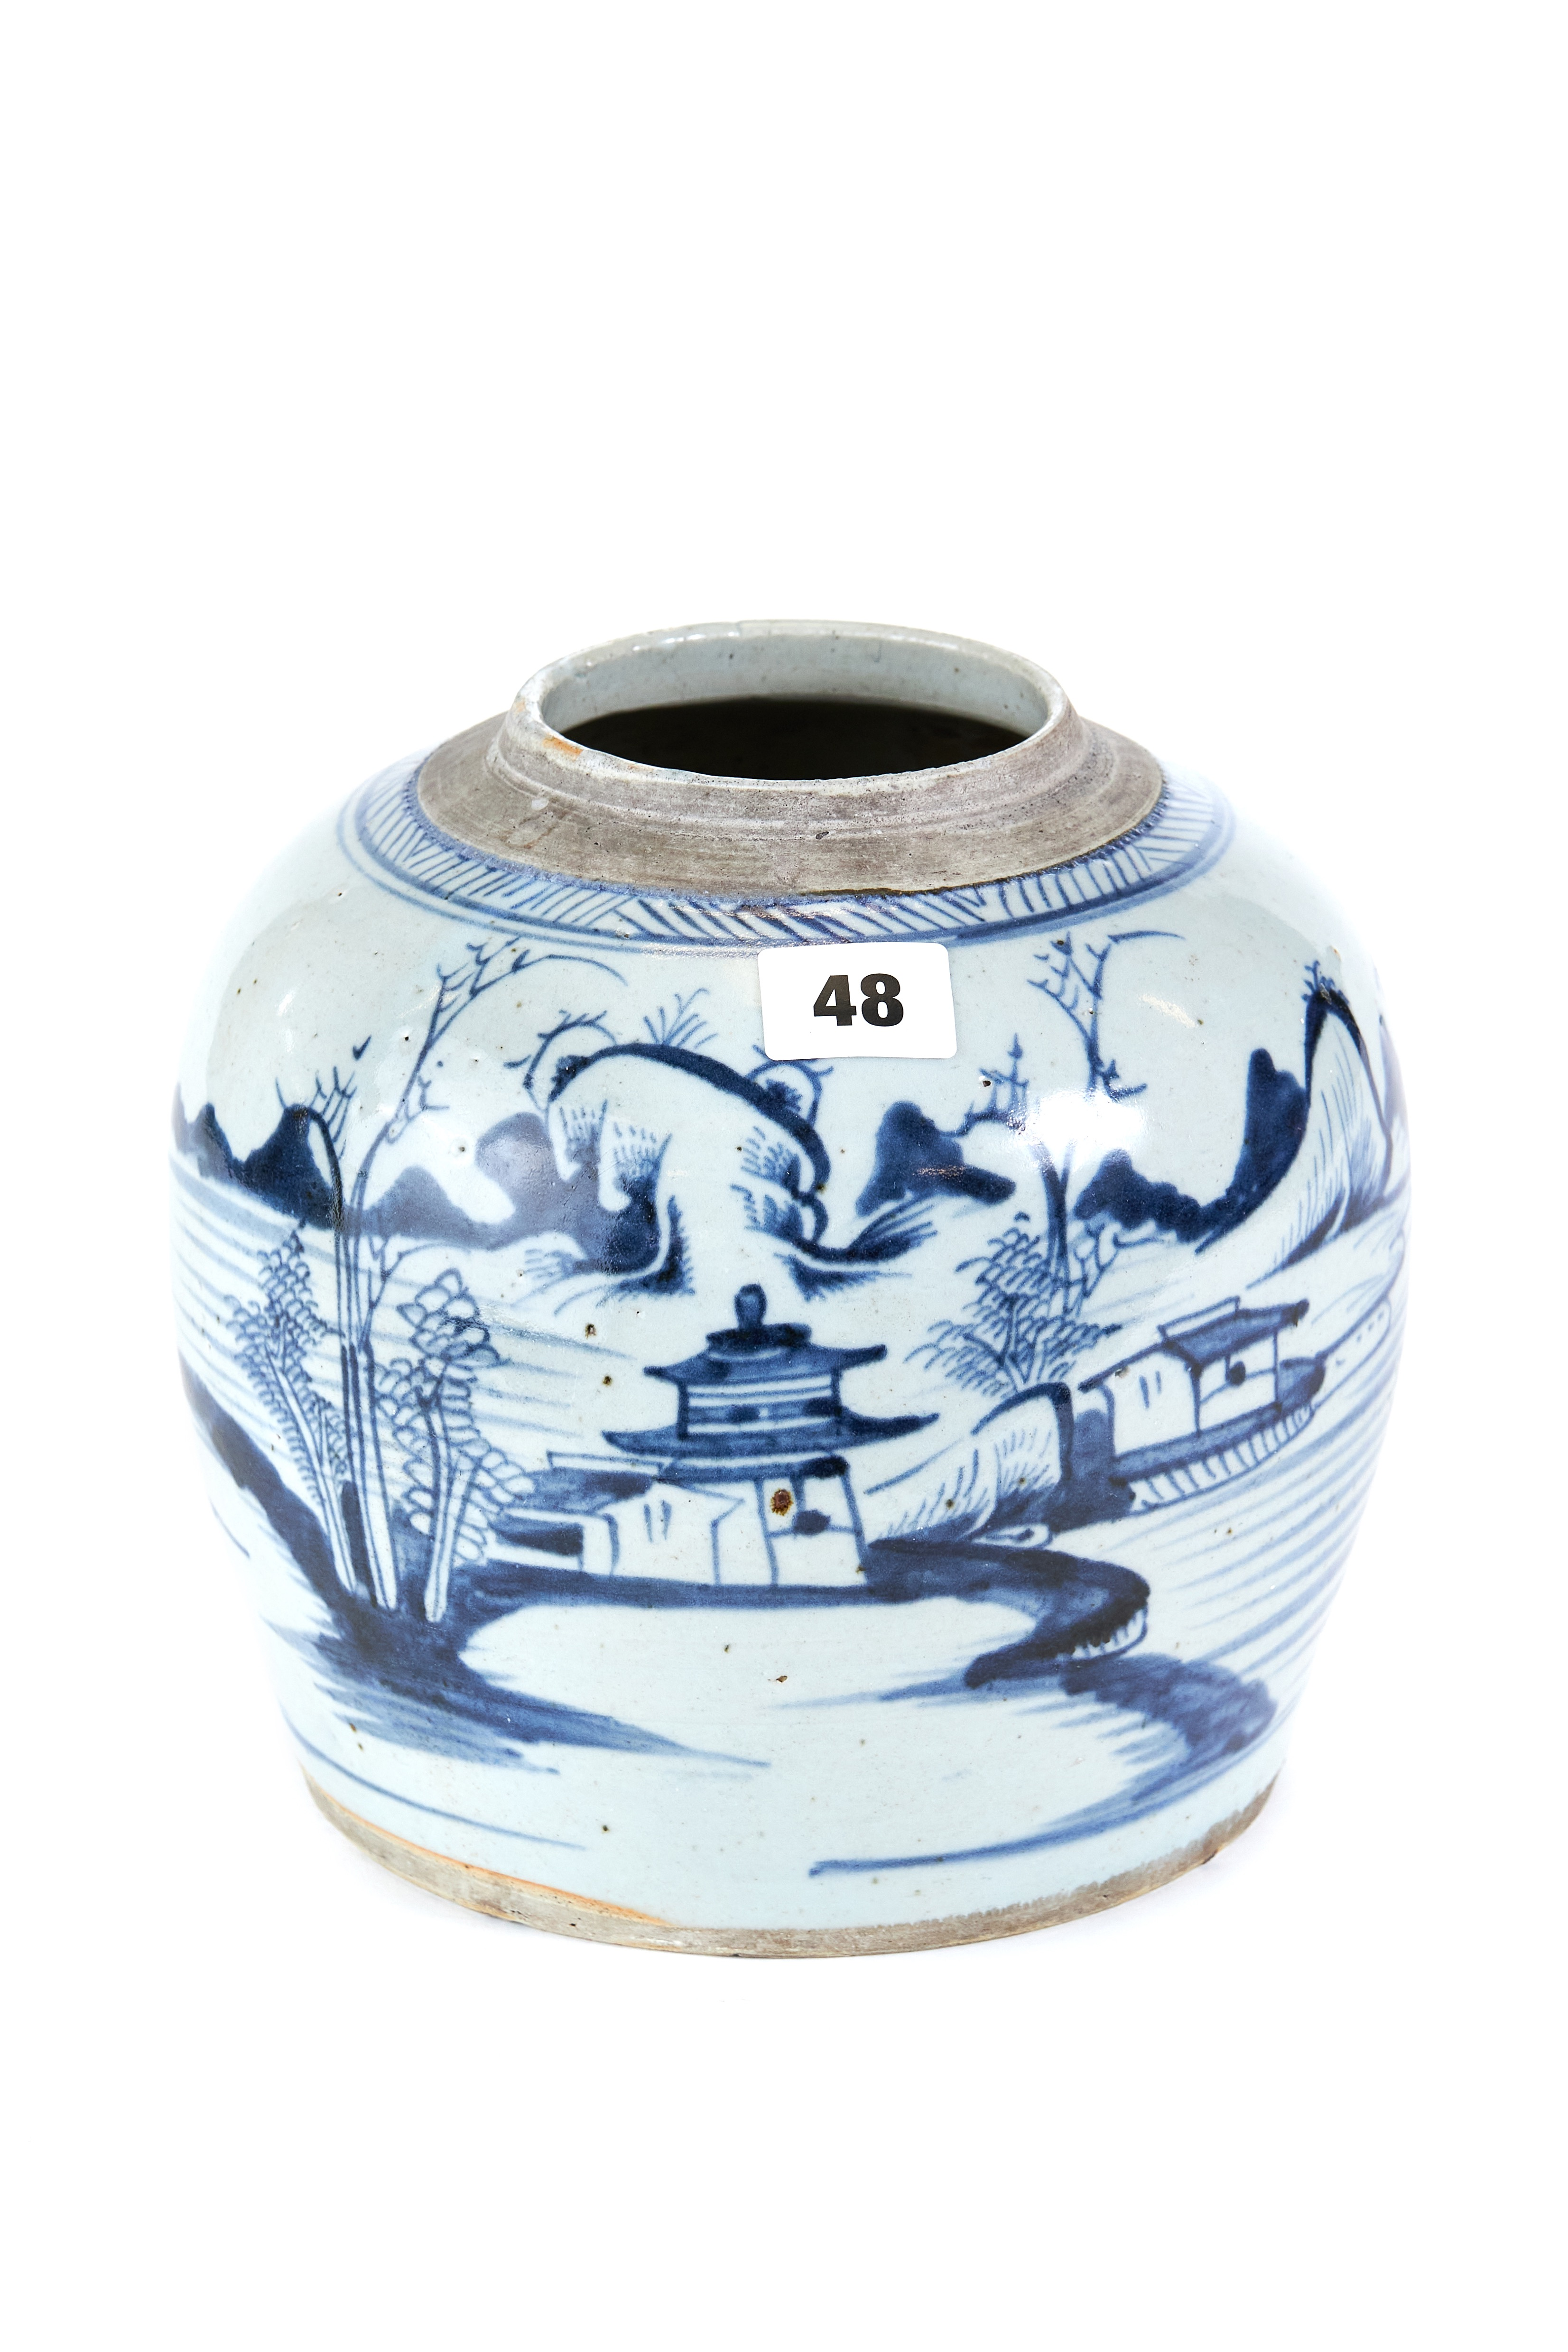 AN 18TH/19TH CENTURY CHINESE BLUE AND WHITE PORCELAIN GINGER JAR decorated with a pagoda and